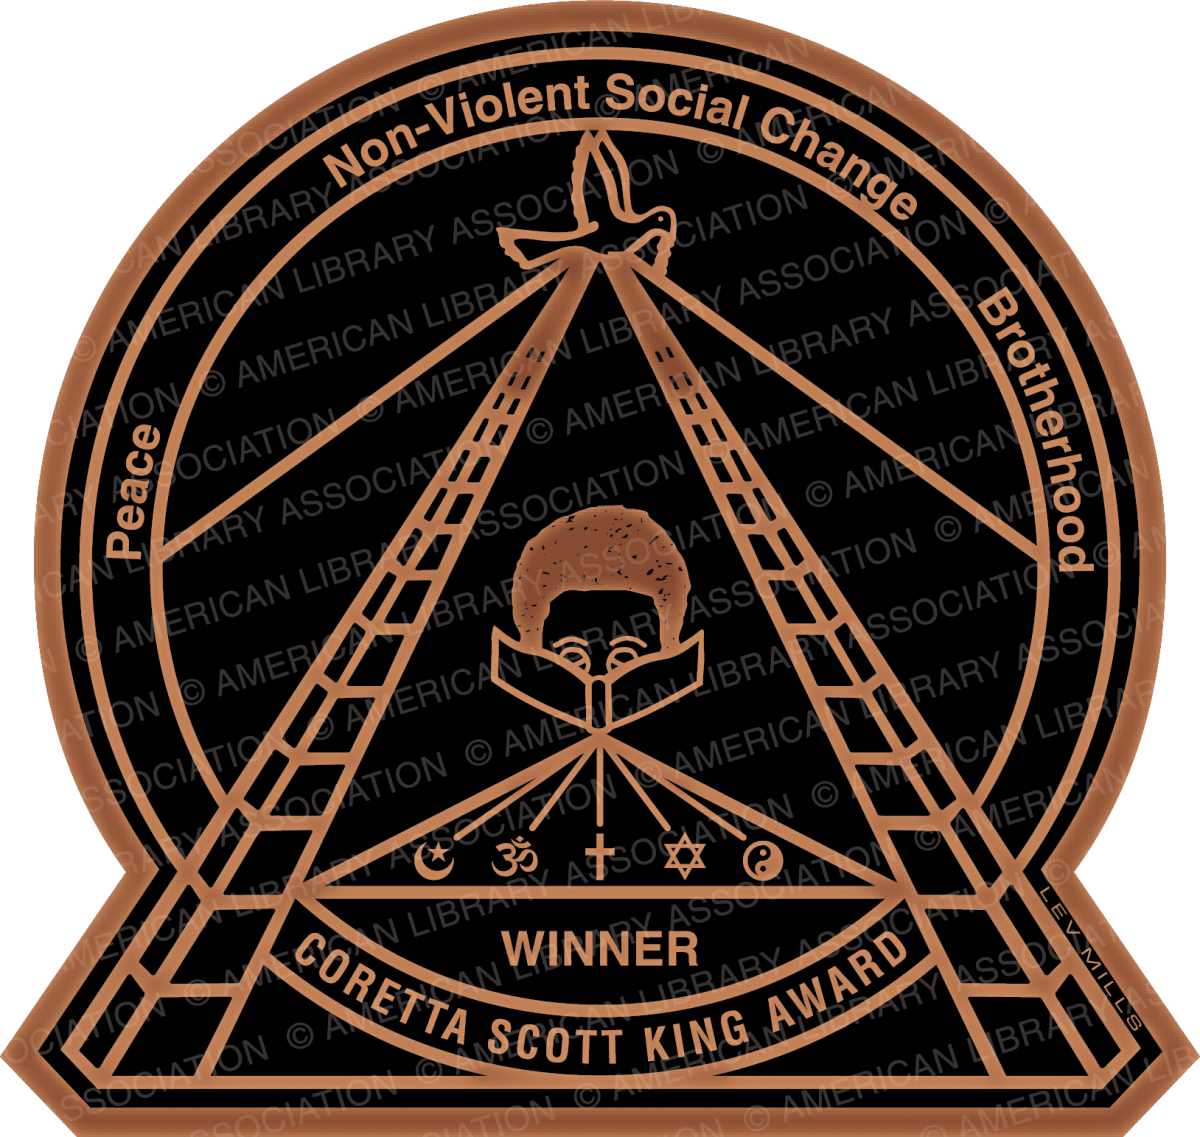 coretta scott king book awards seal